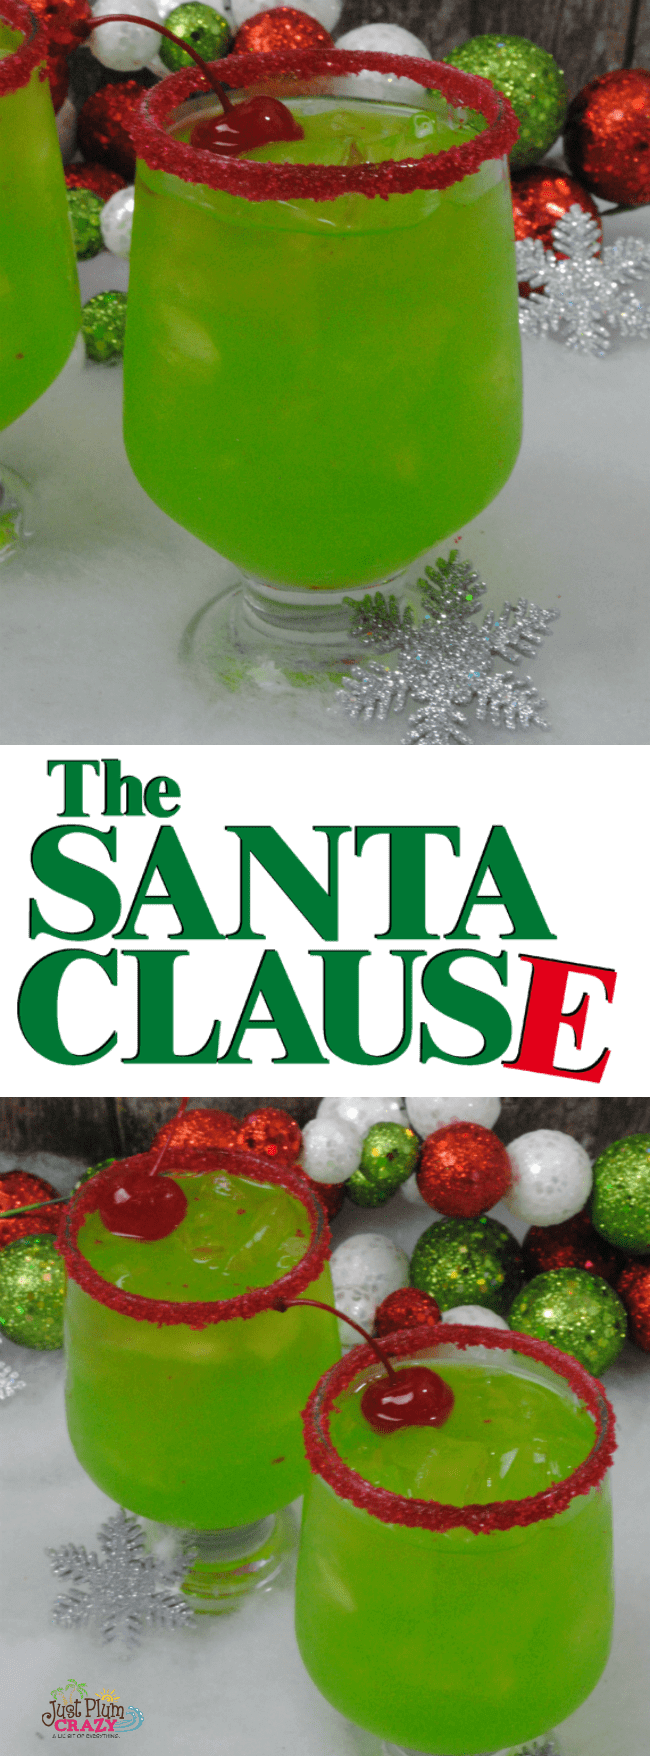 Santa Clause Drinking Game | Christmas Movie Party Game 1